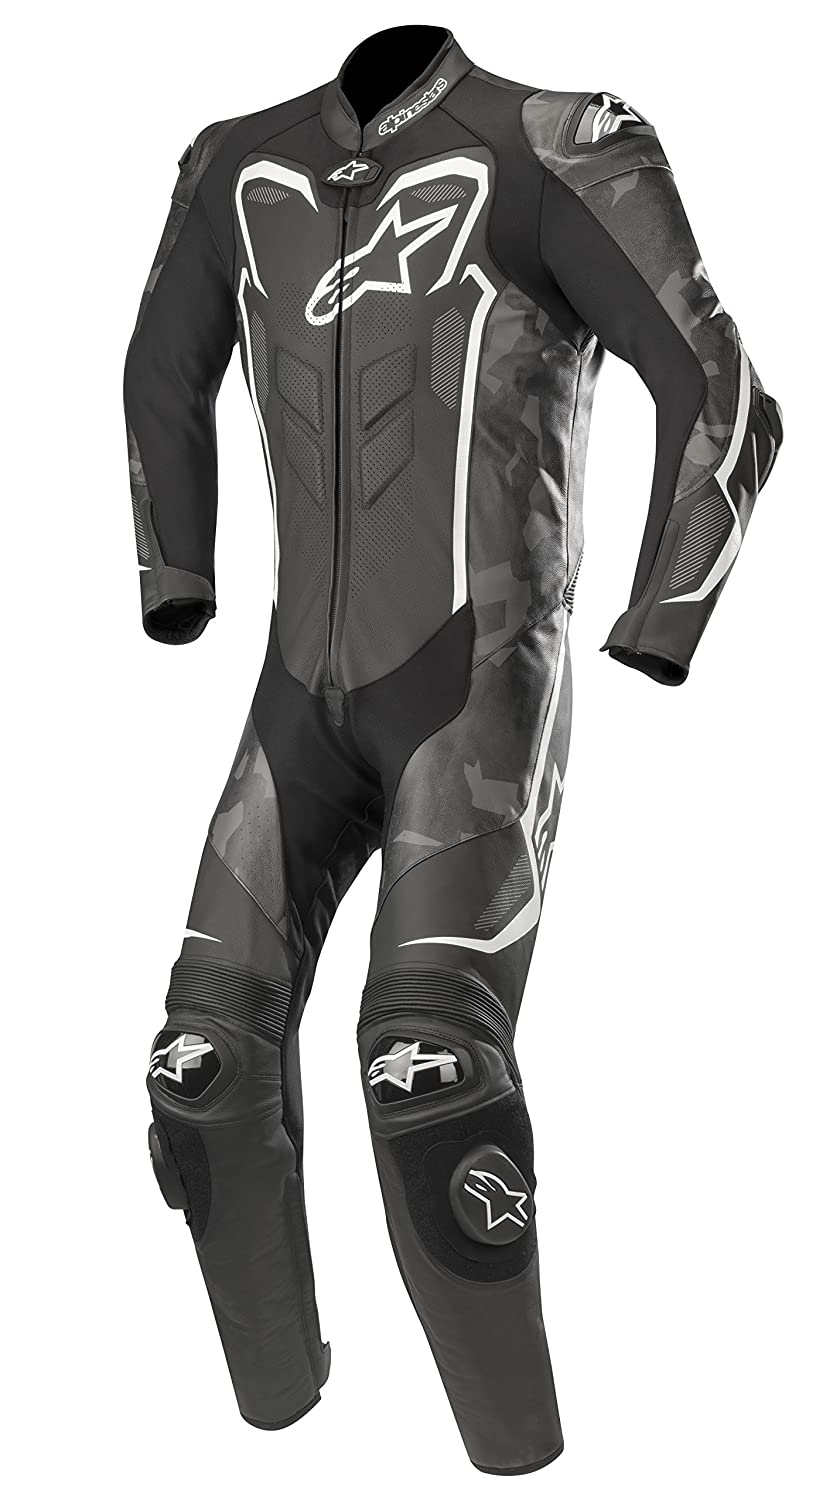 Black//White, Size 54 Alpinestars Mens 3150718-997-54 Suit